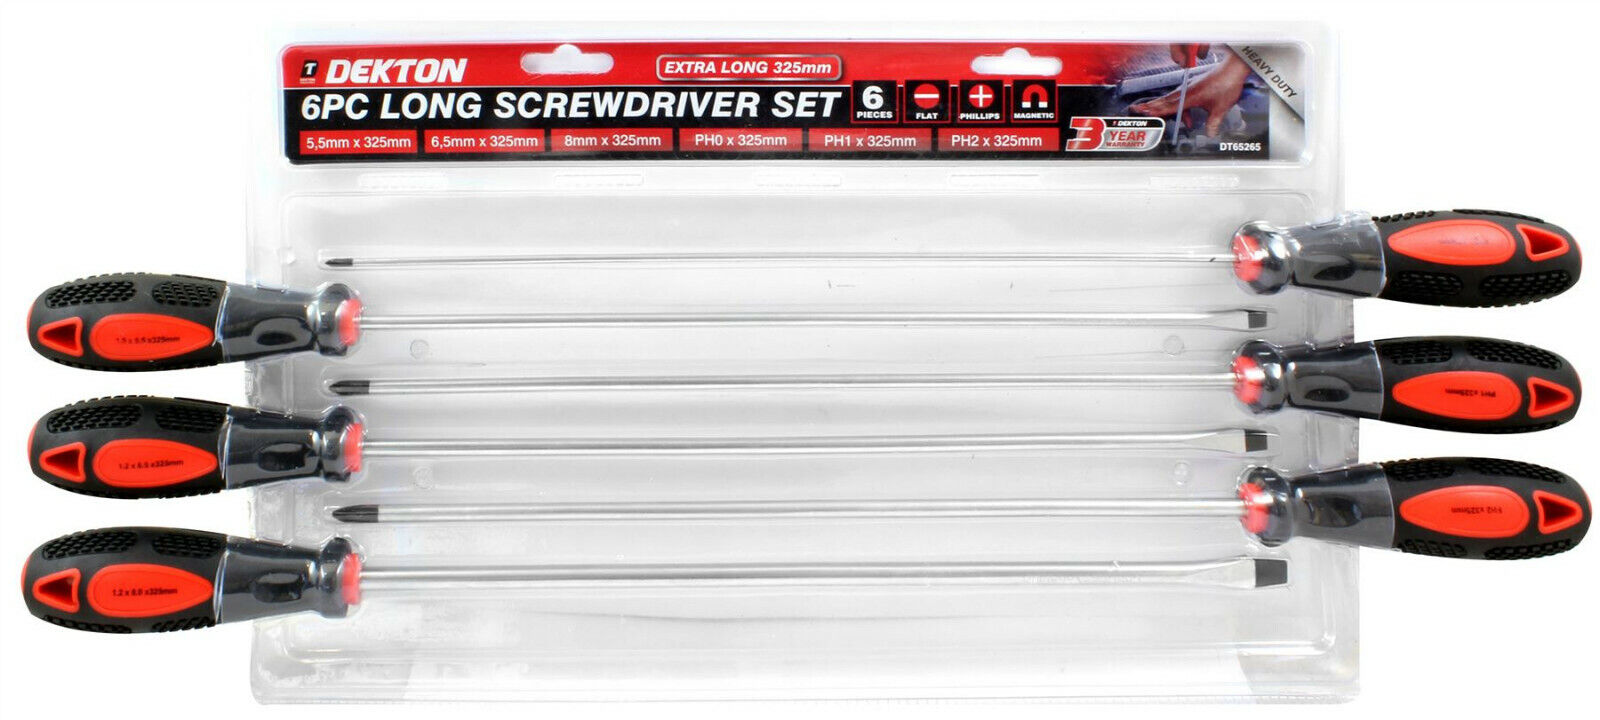 6PC EXTRA LONG SCREWDRIVER SET 325MM MAGNETIC TIP PHILLIPS FLAT HEAD HEAVY DUTY